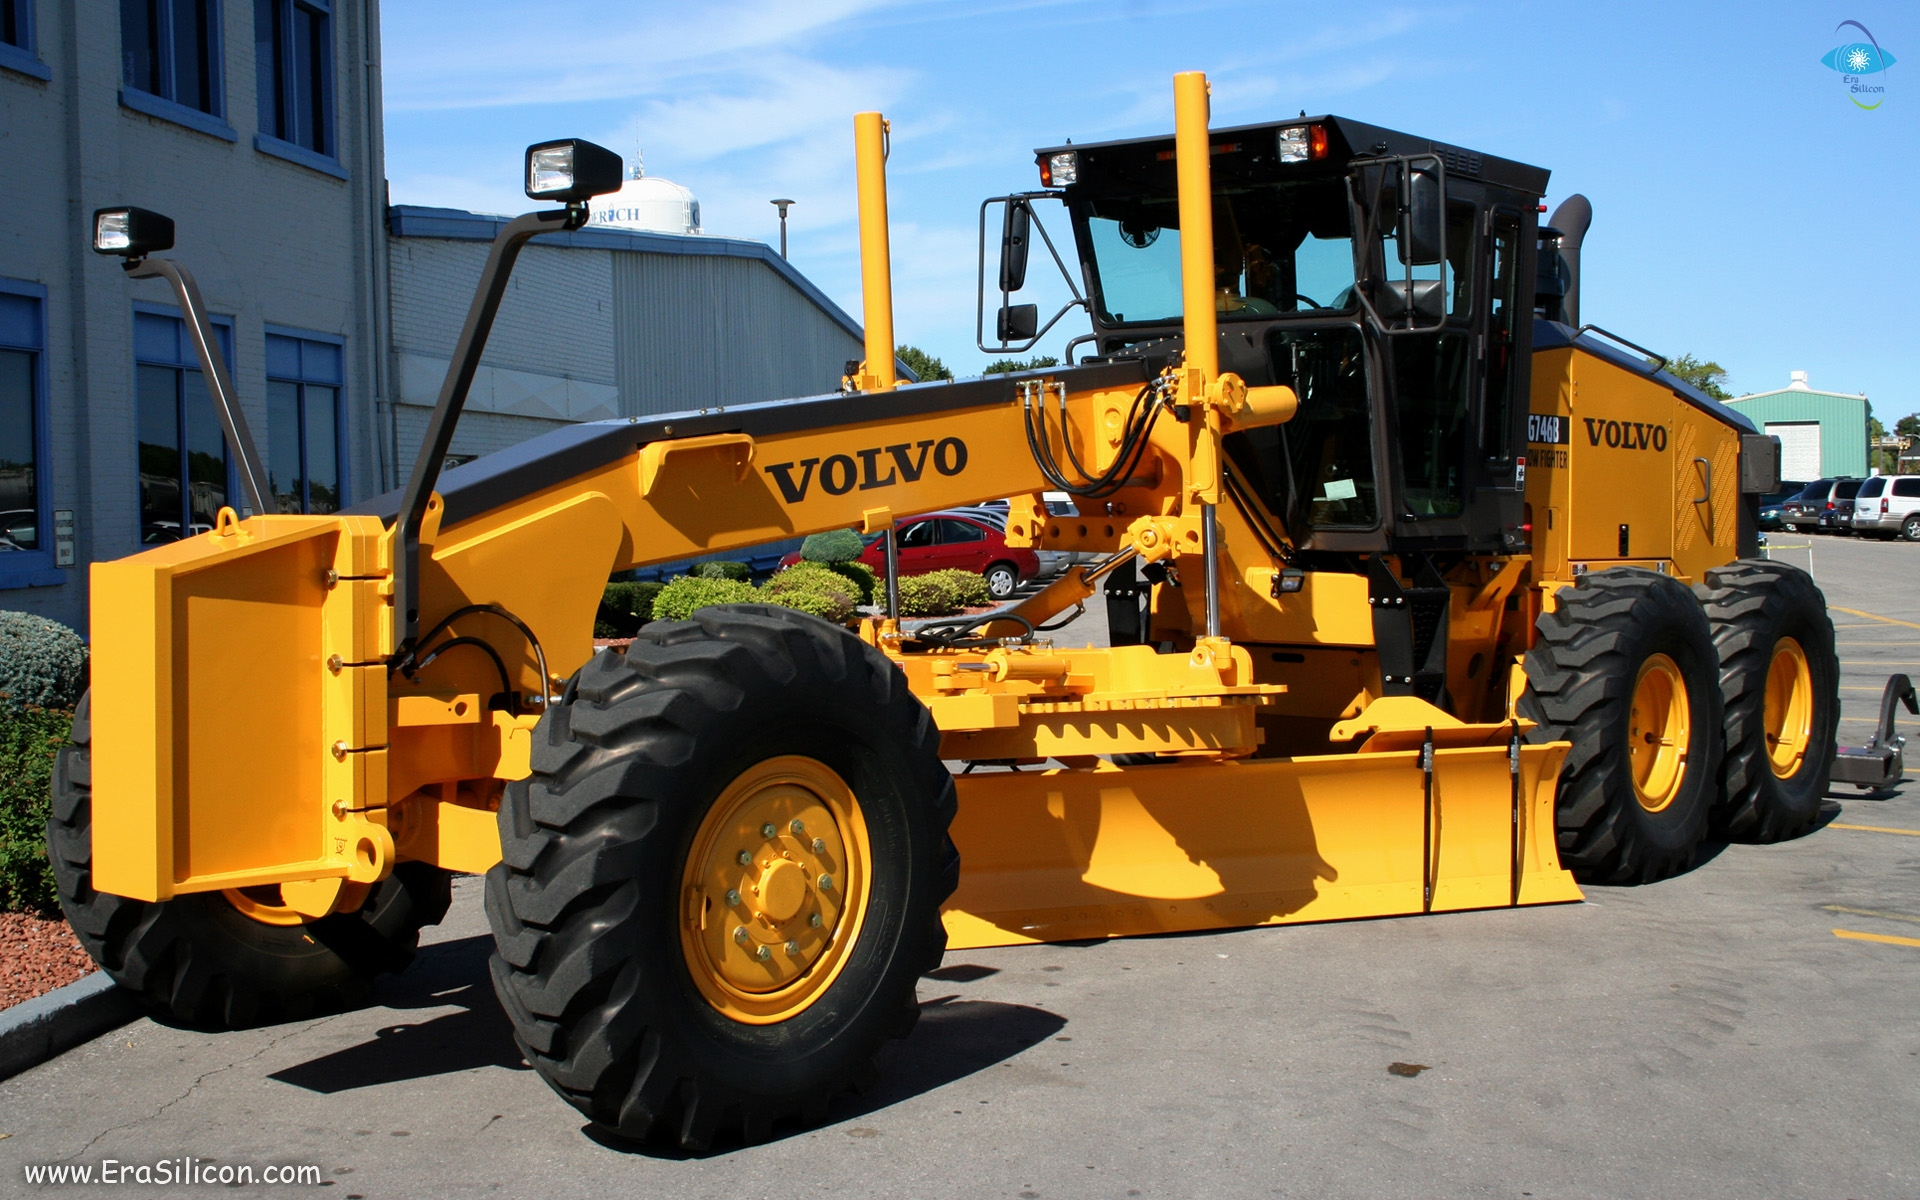 2 Volvo Grader Hd Wallpapers Background Images